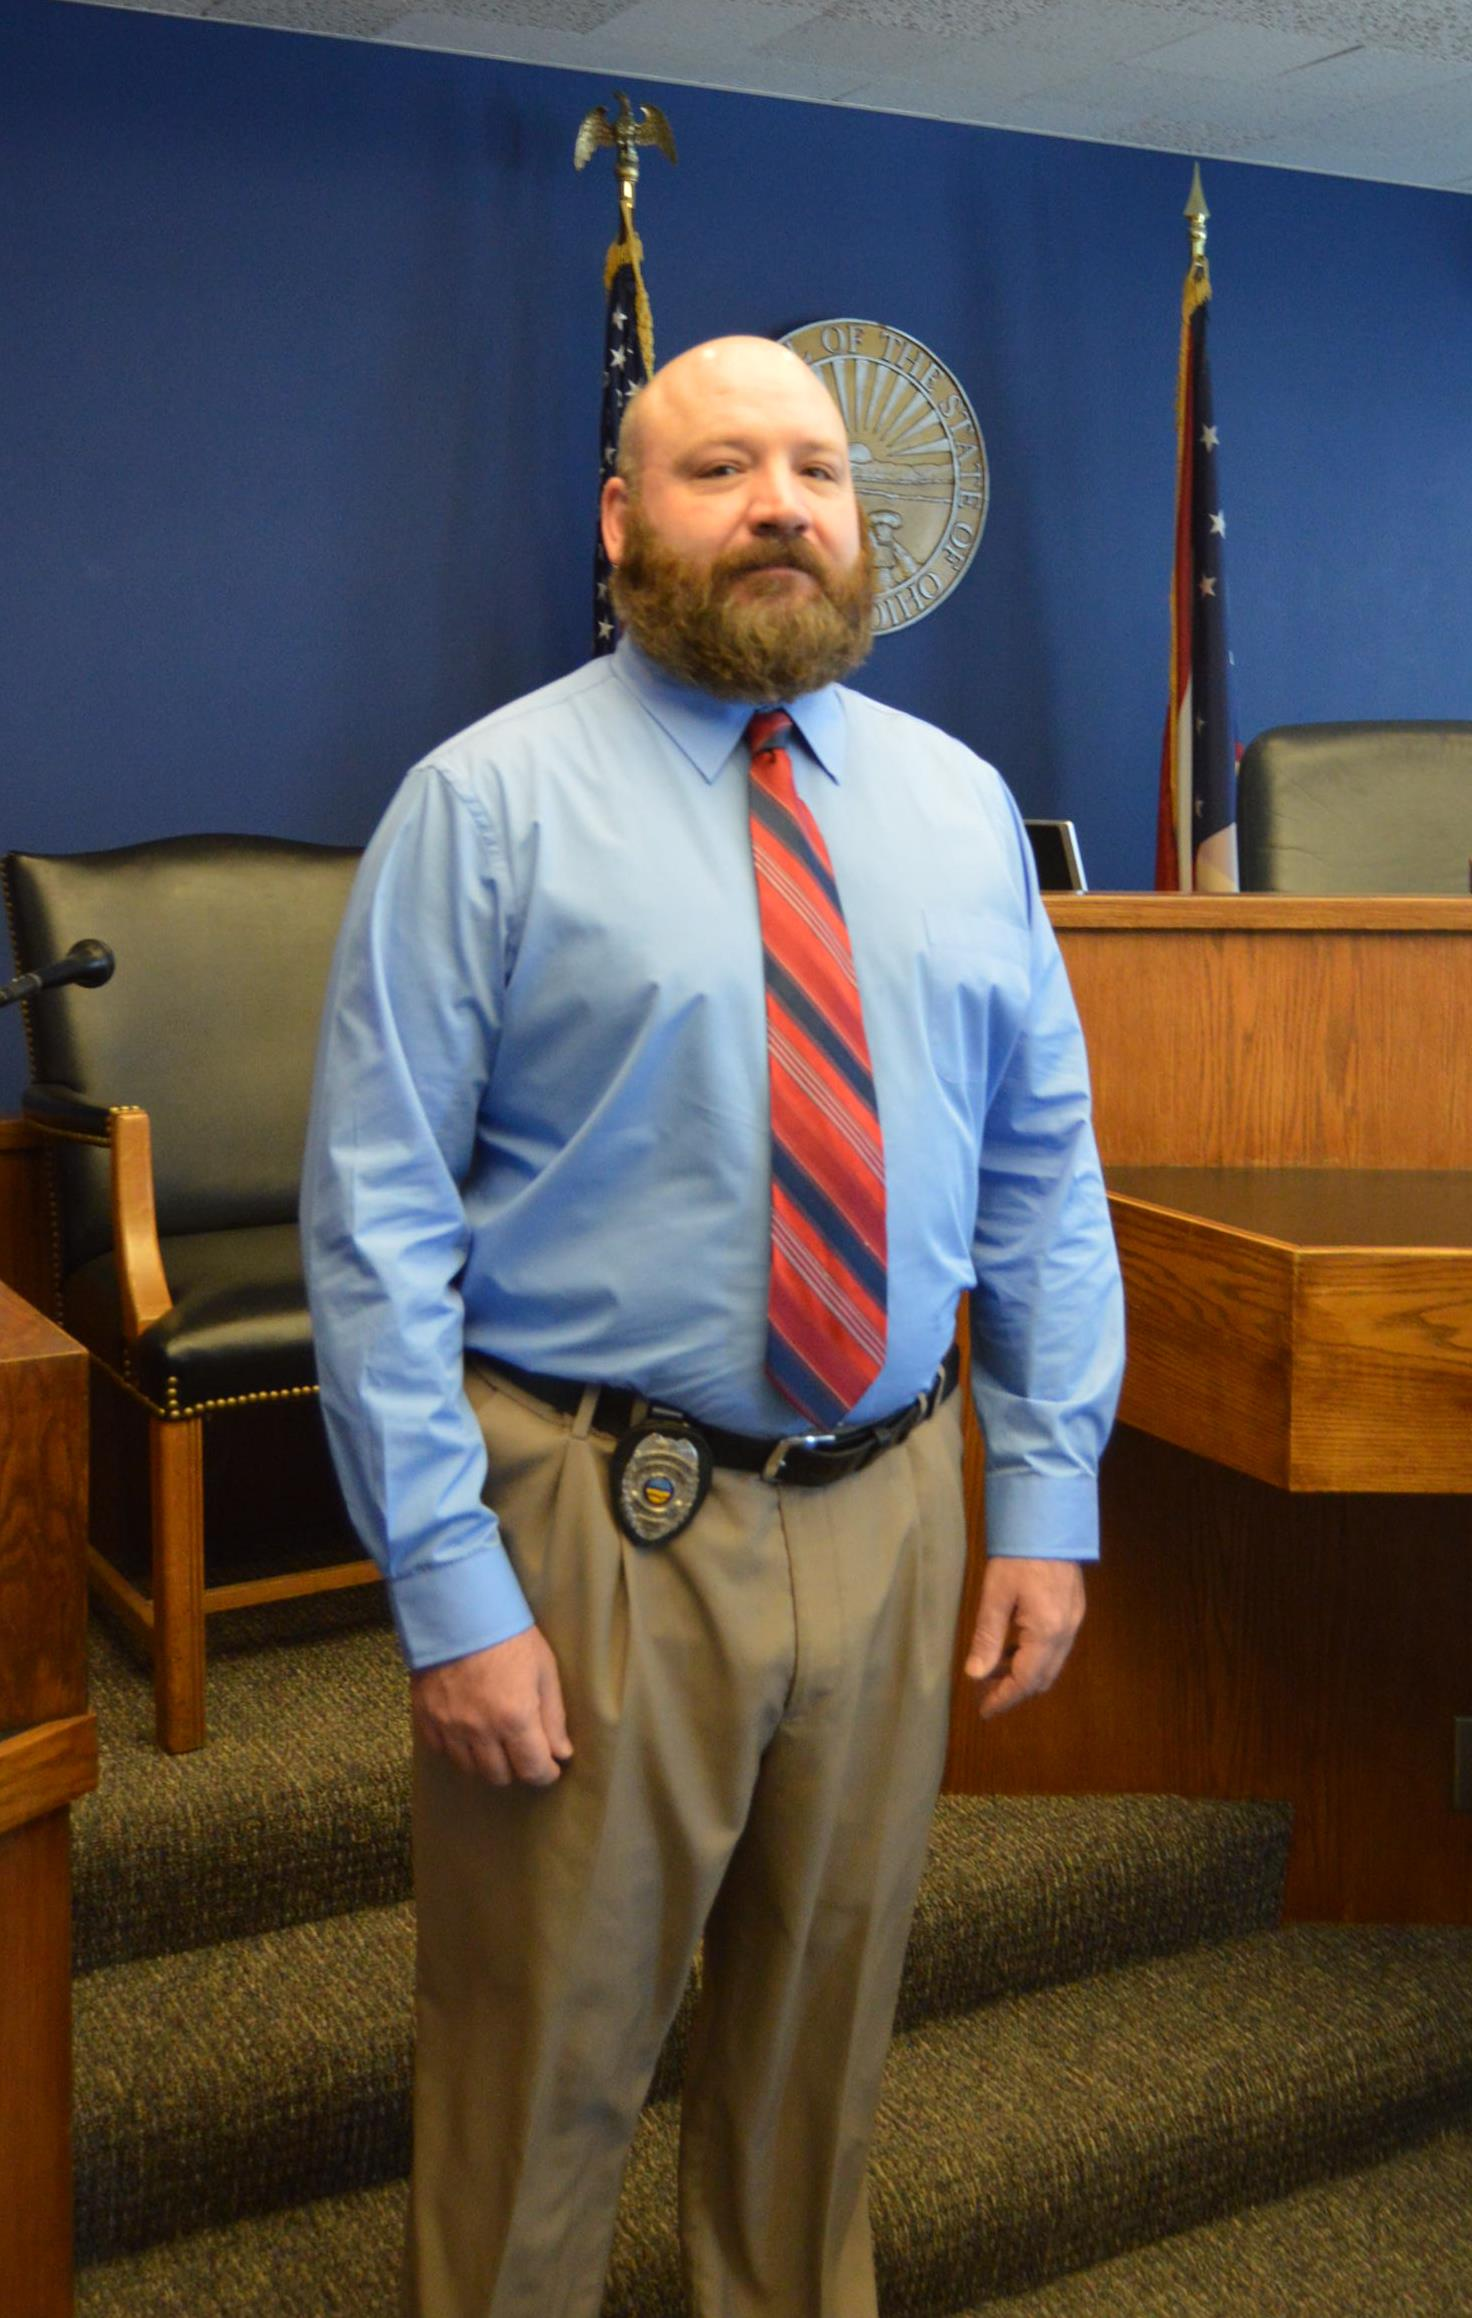 Probation Officer Matt Esterle